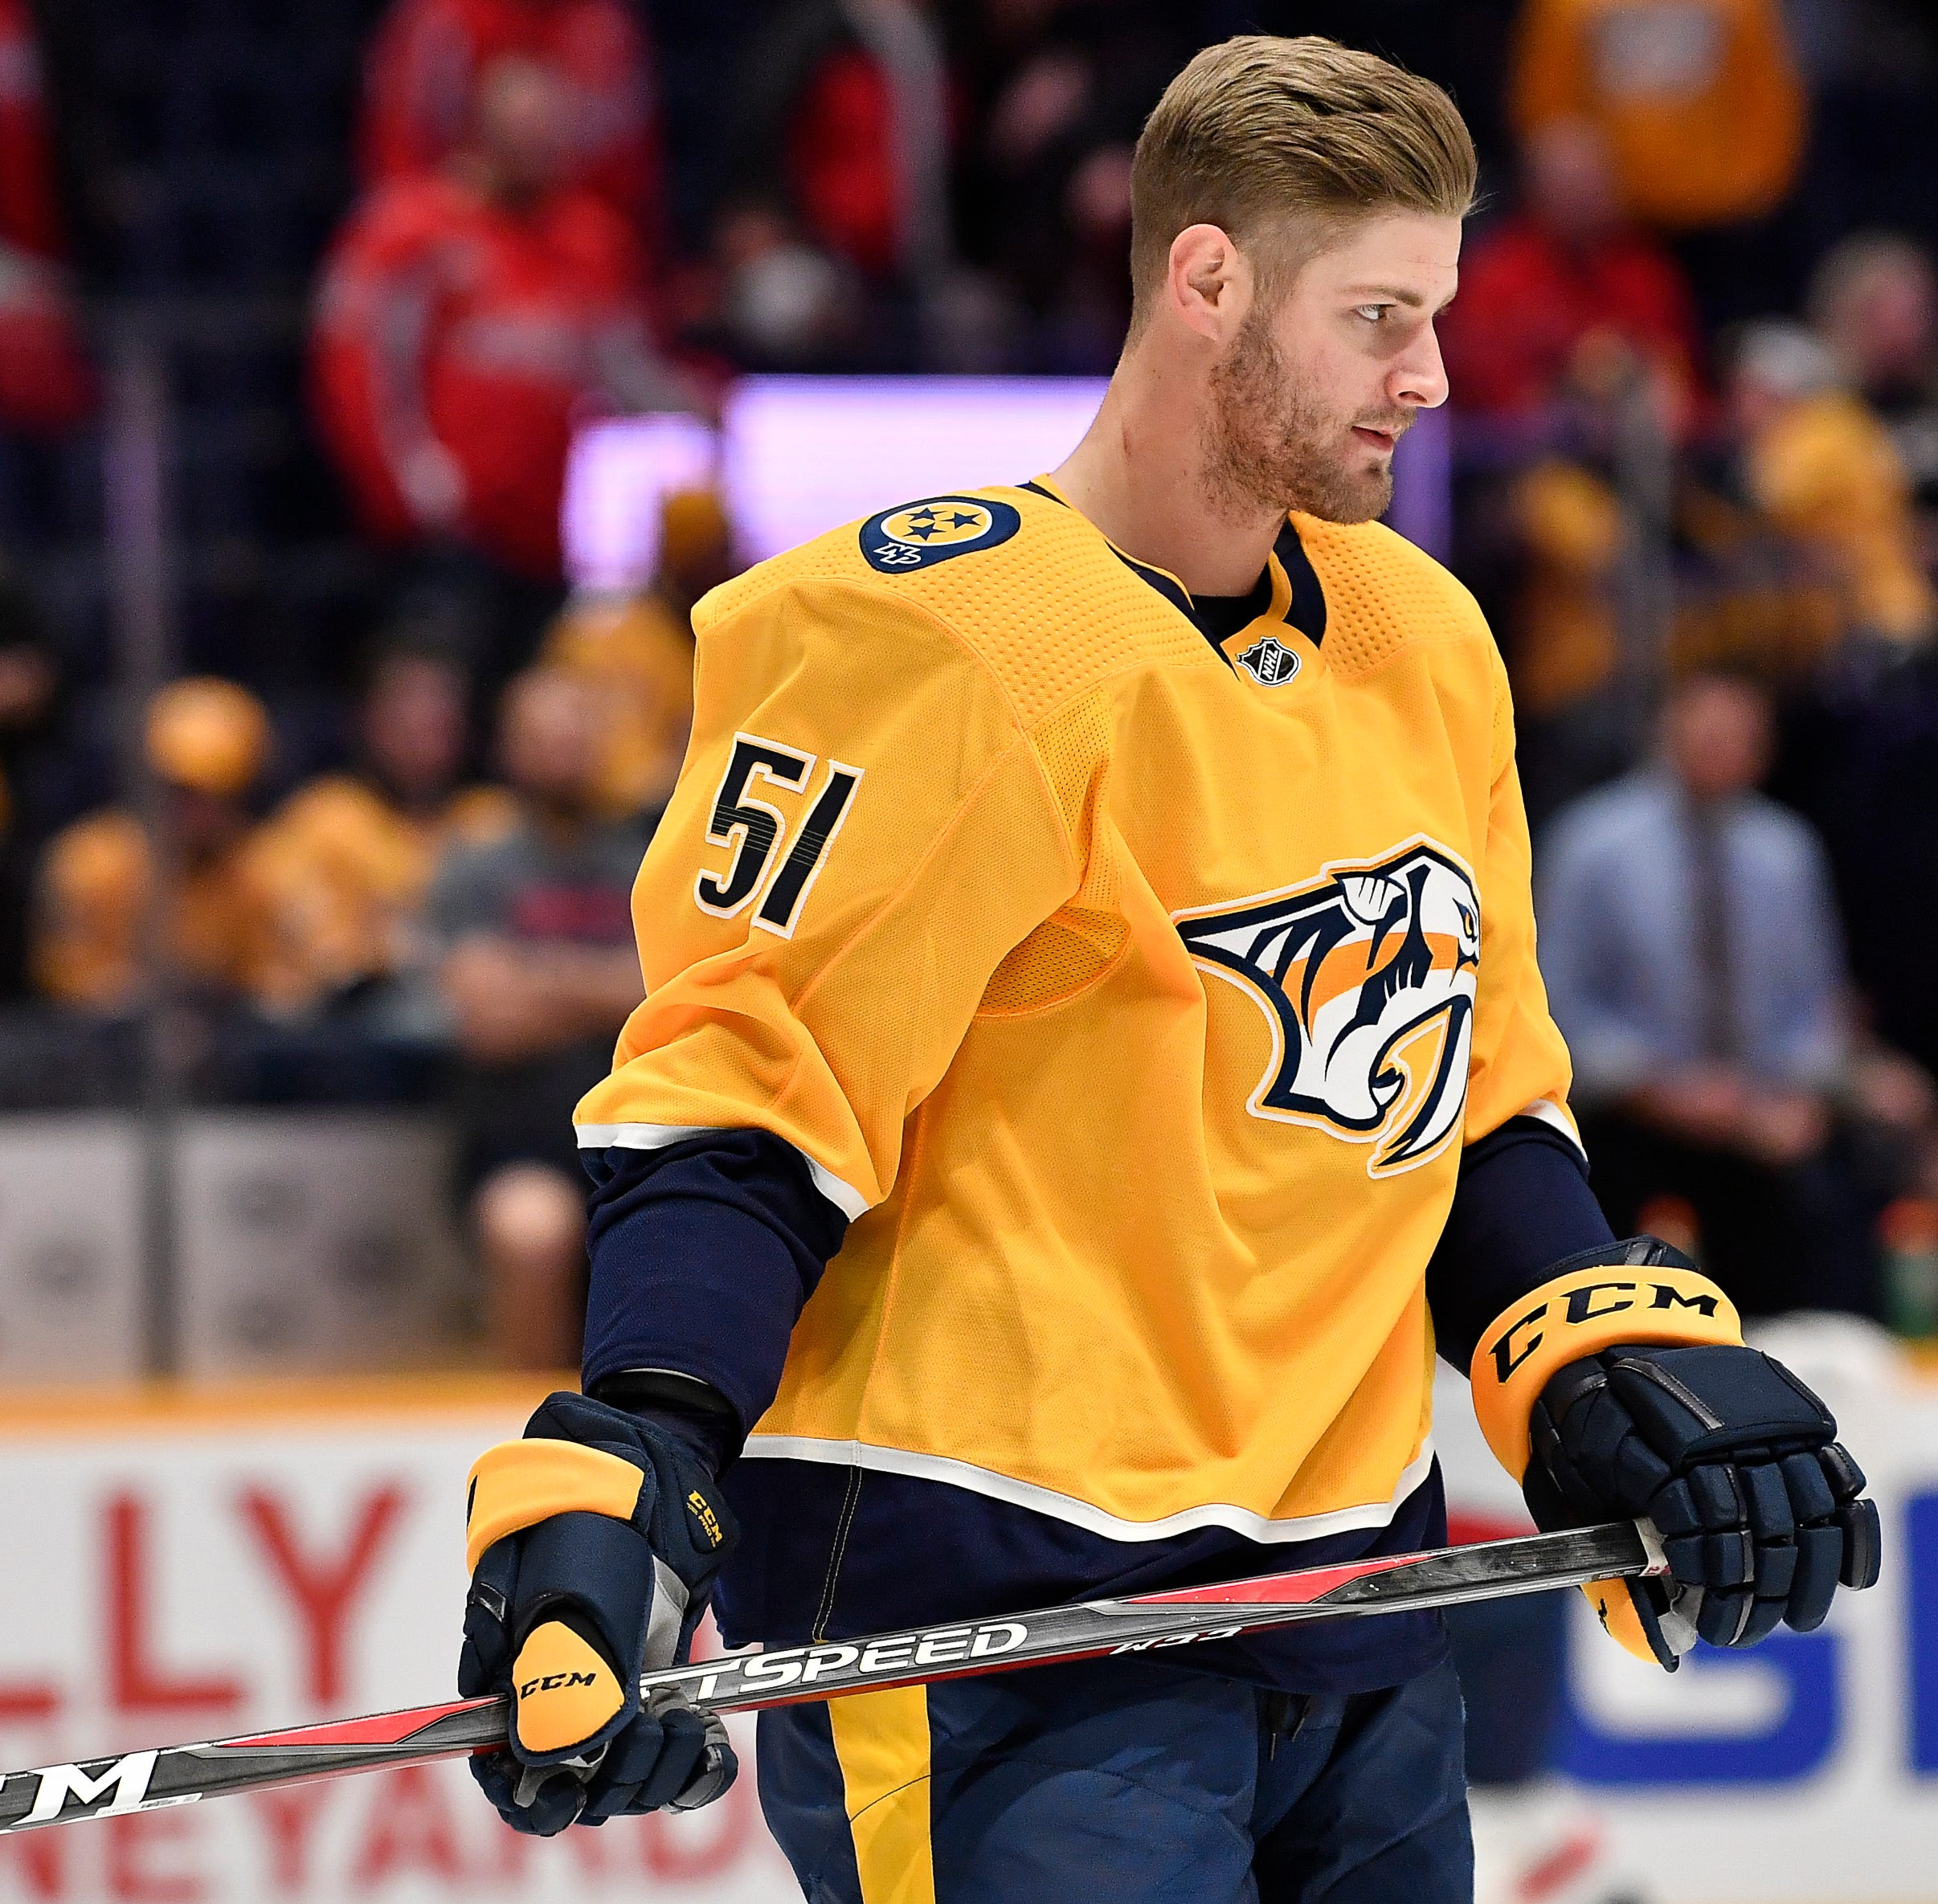 5 things to consider about Predators' Austin Watson's reinstatement from indefinite suspension